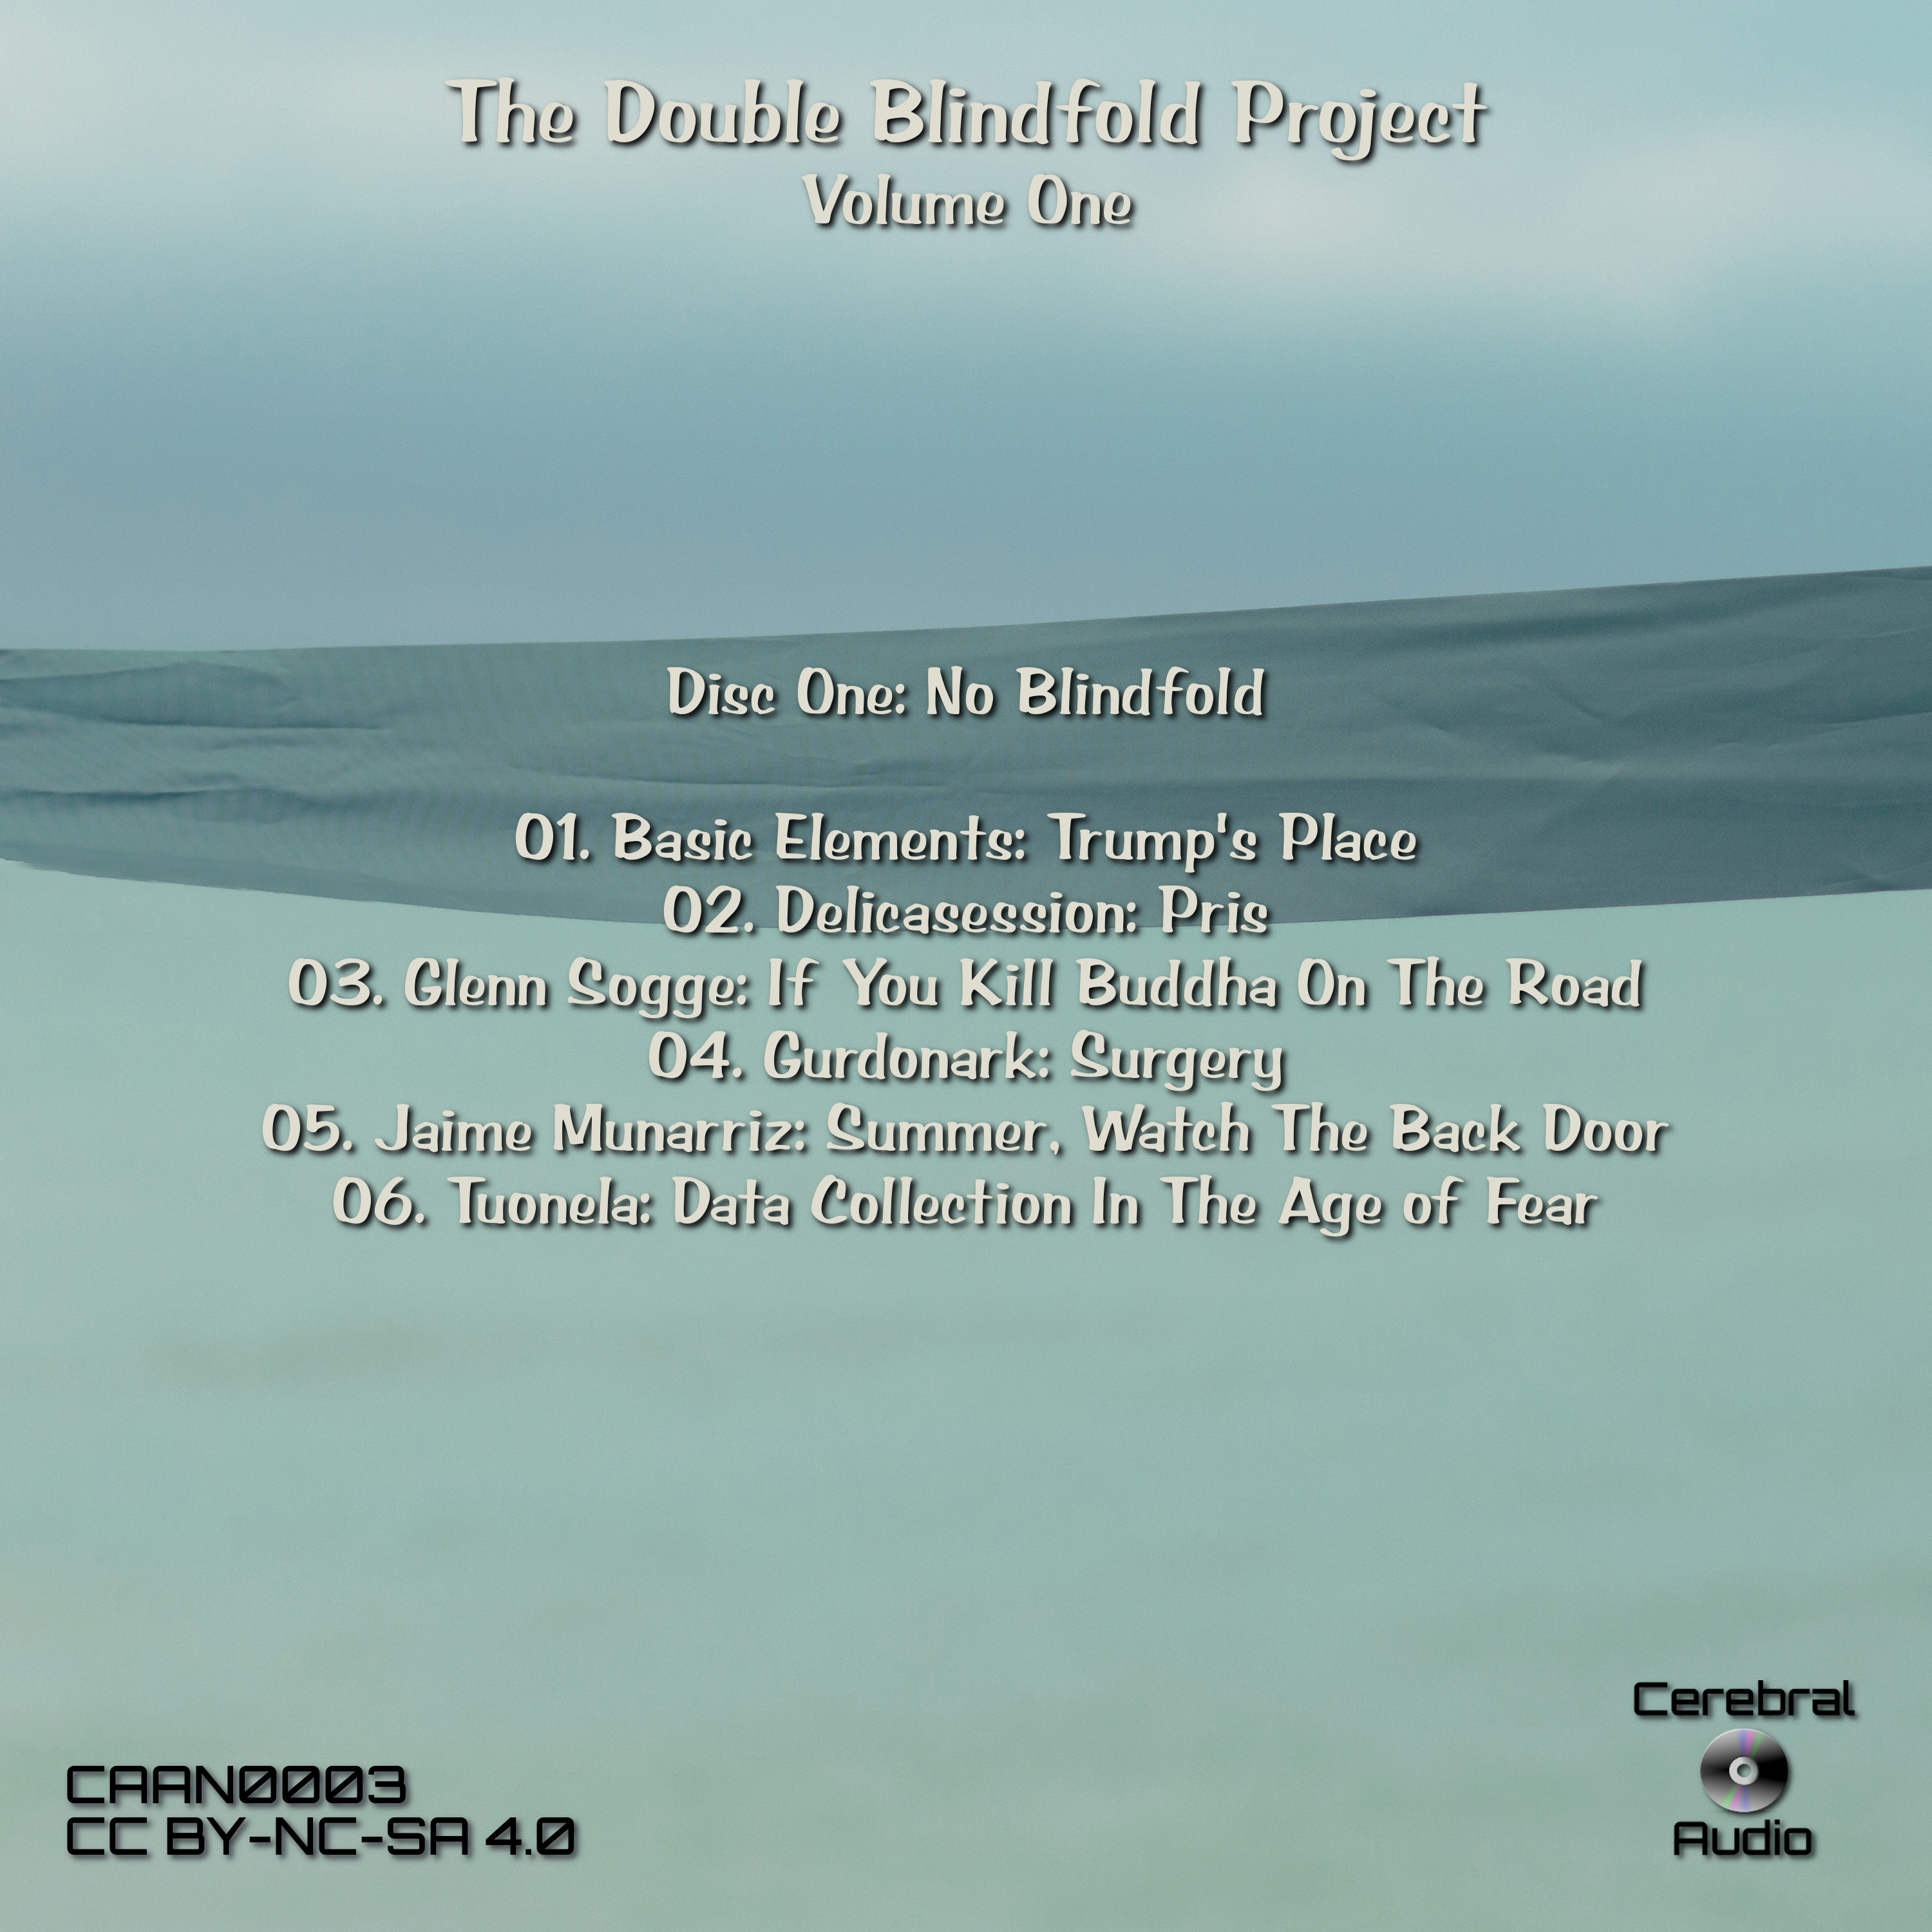 Double Blindfold Project Volume One